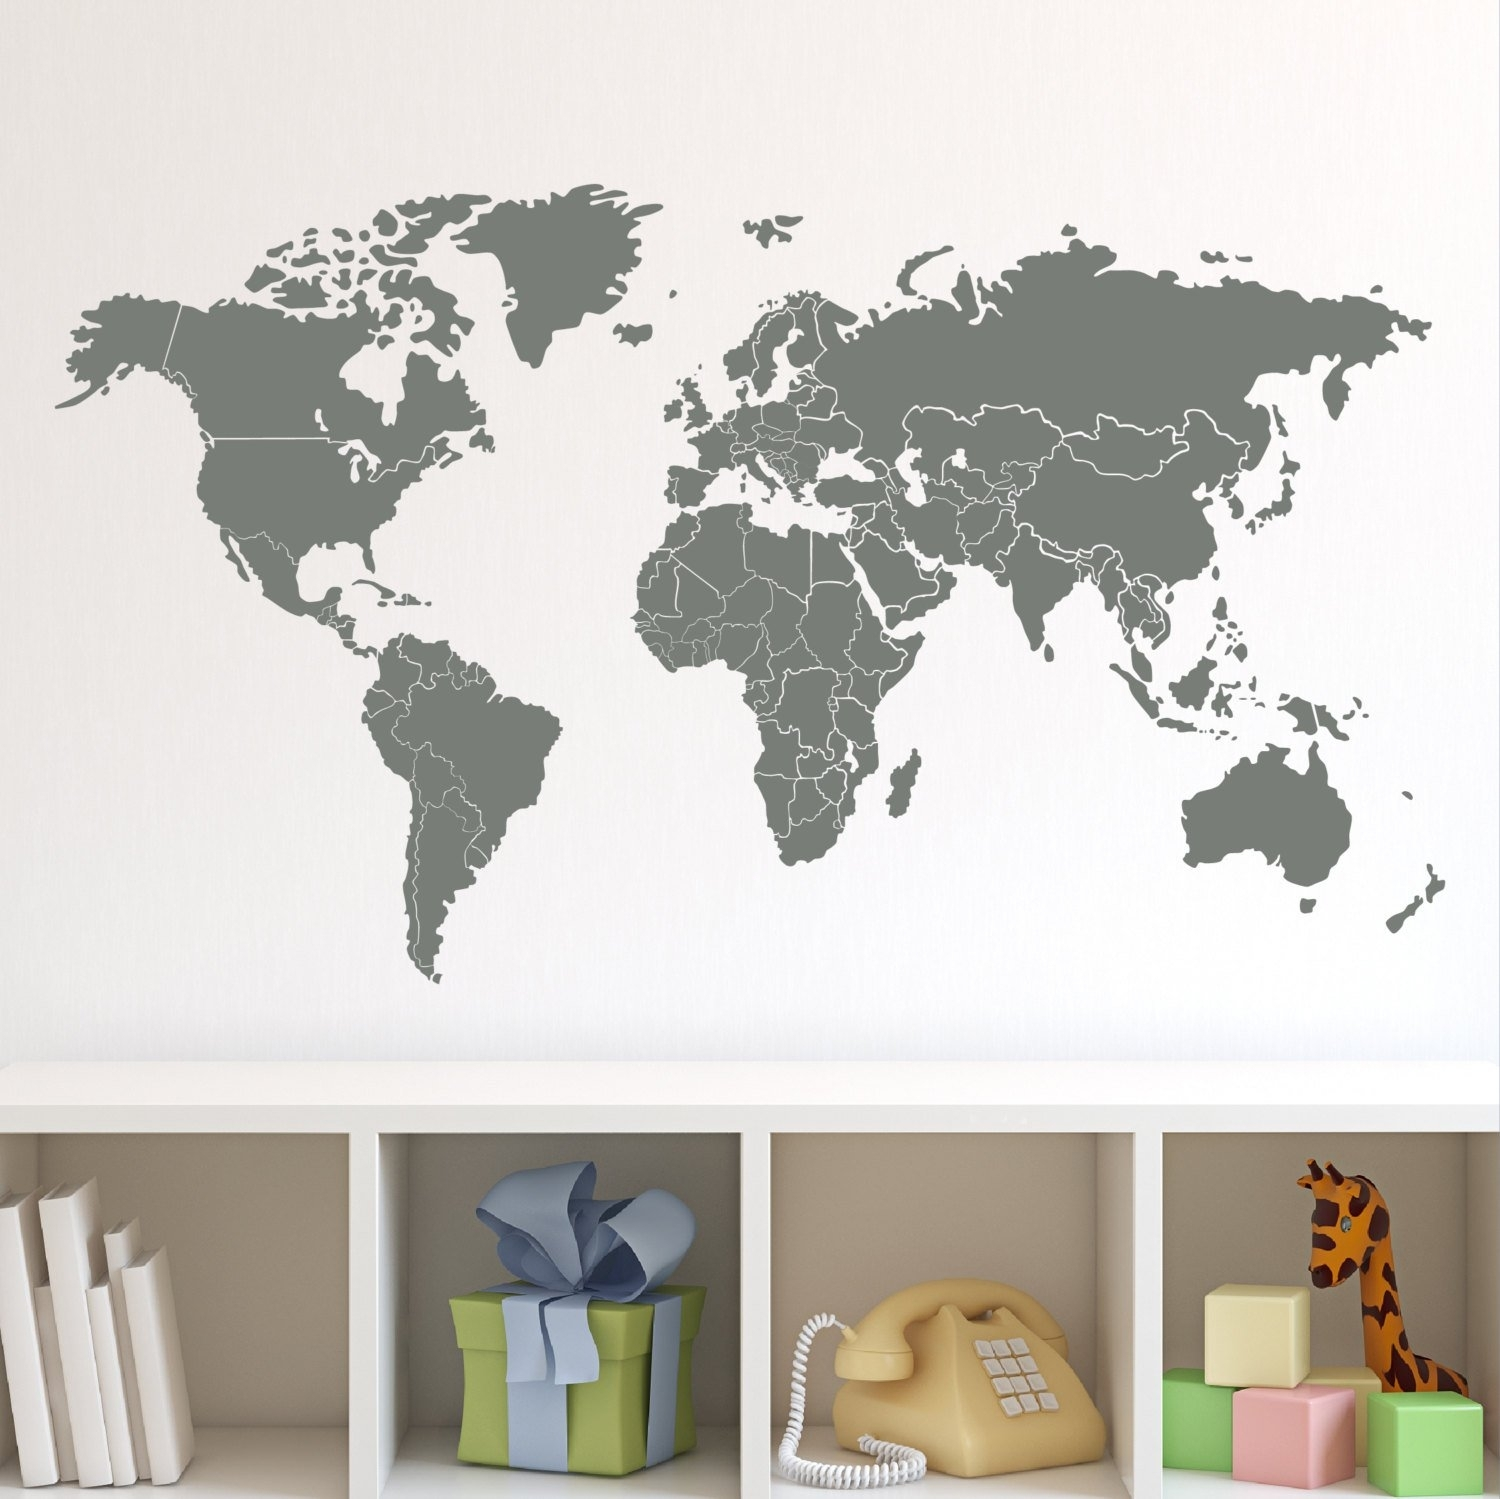 Nice World Map Wall Decals – Home Design #940 Regarding Wall Art Stickers World Map (View 20 of 20)